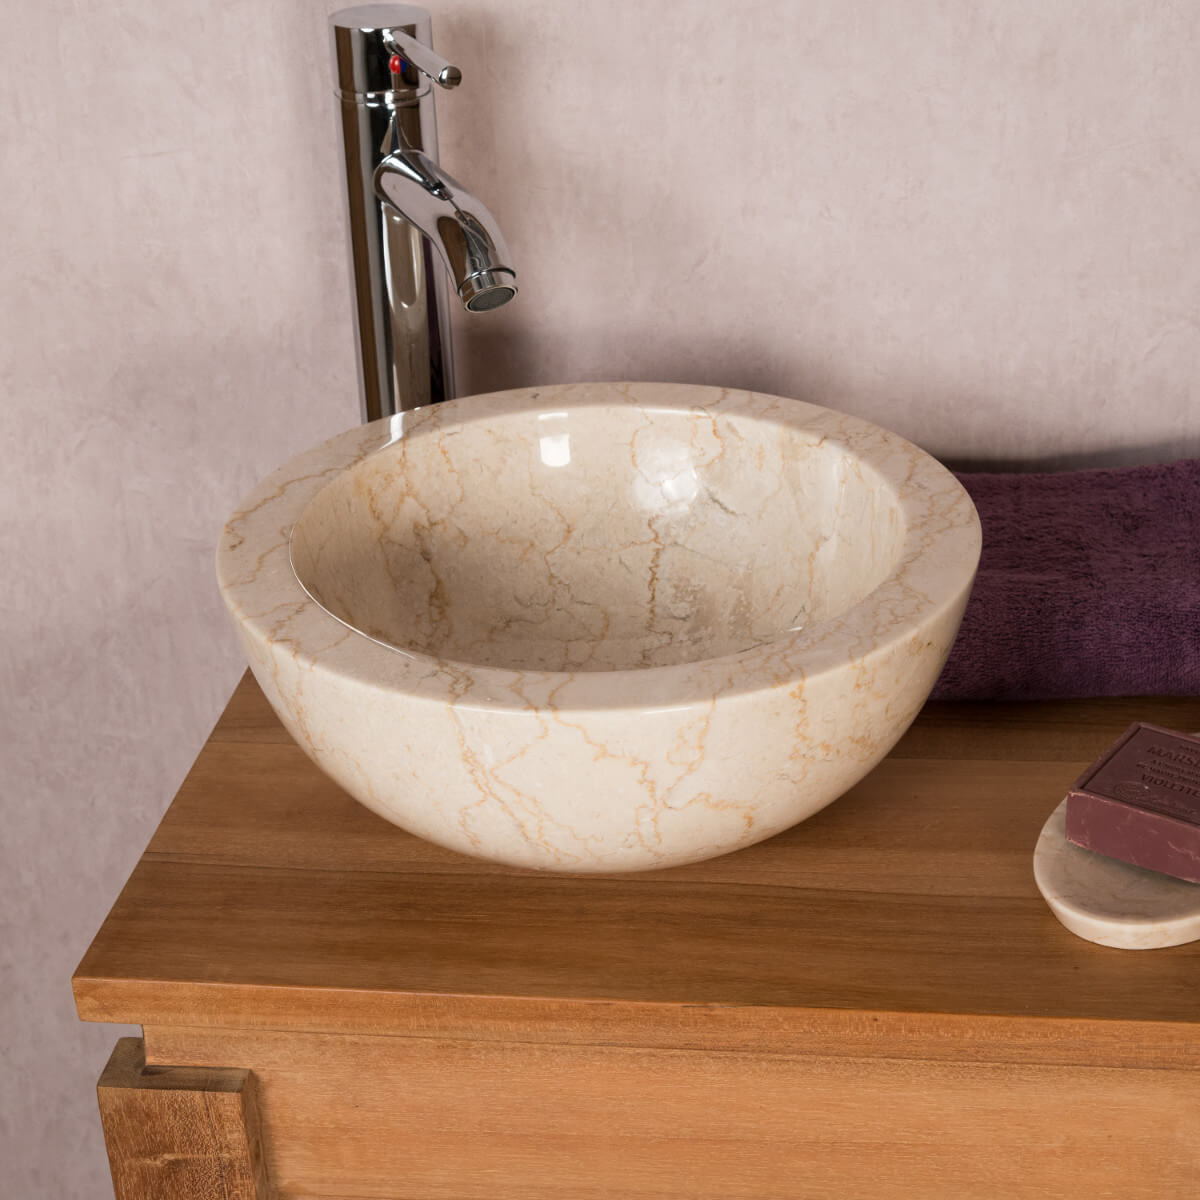 Vasque poser en marbre barcelone ronde cr me d 30 cm for Support salle de bain avec ventouse